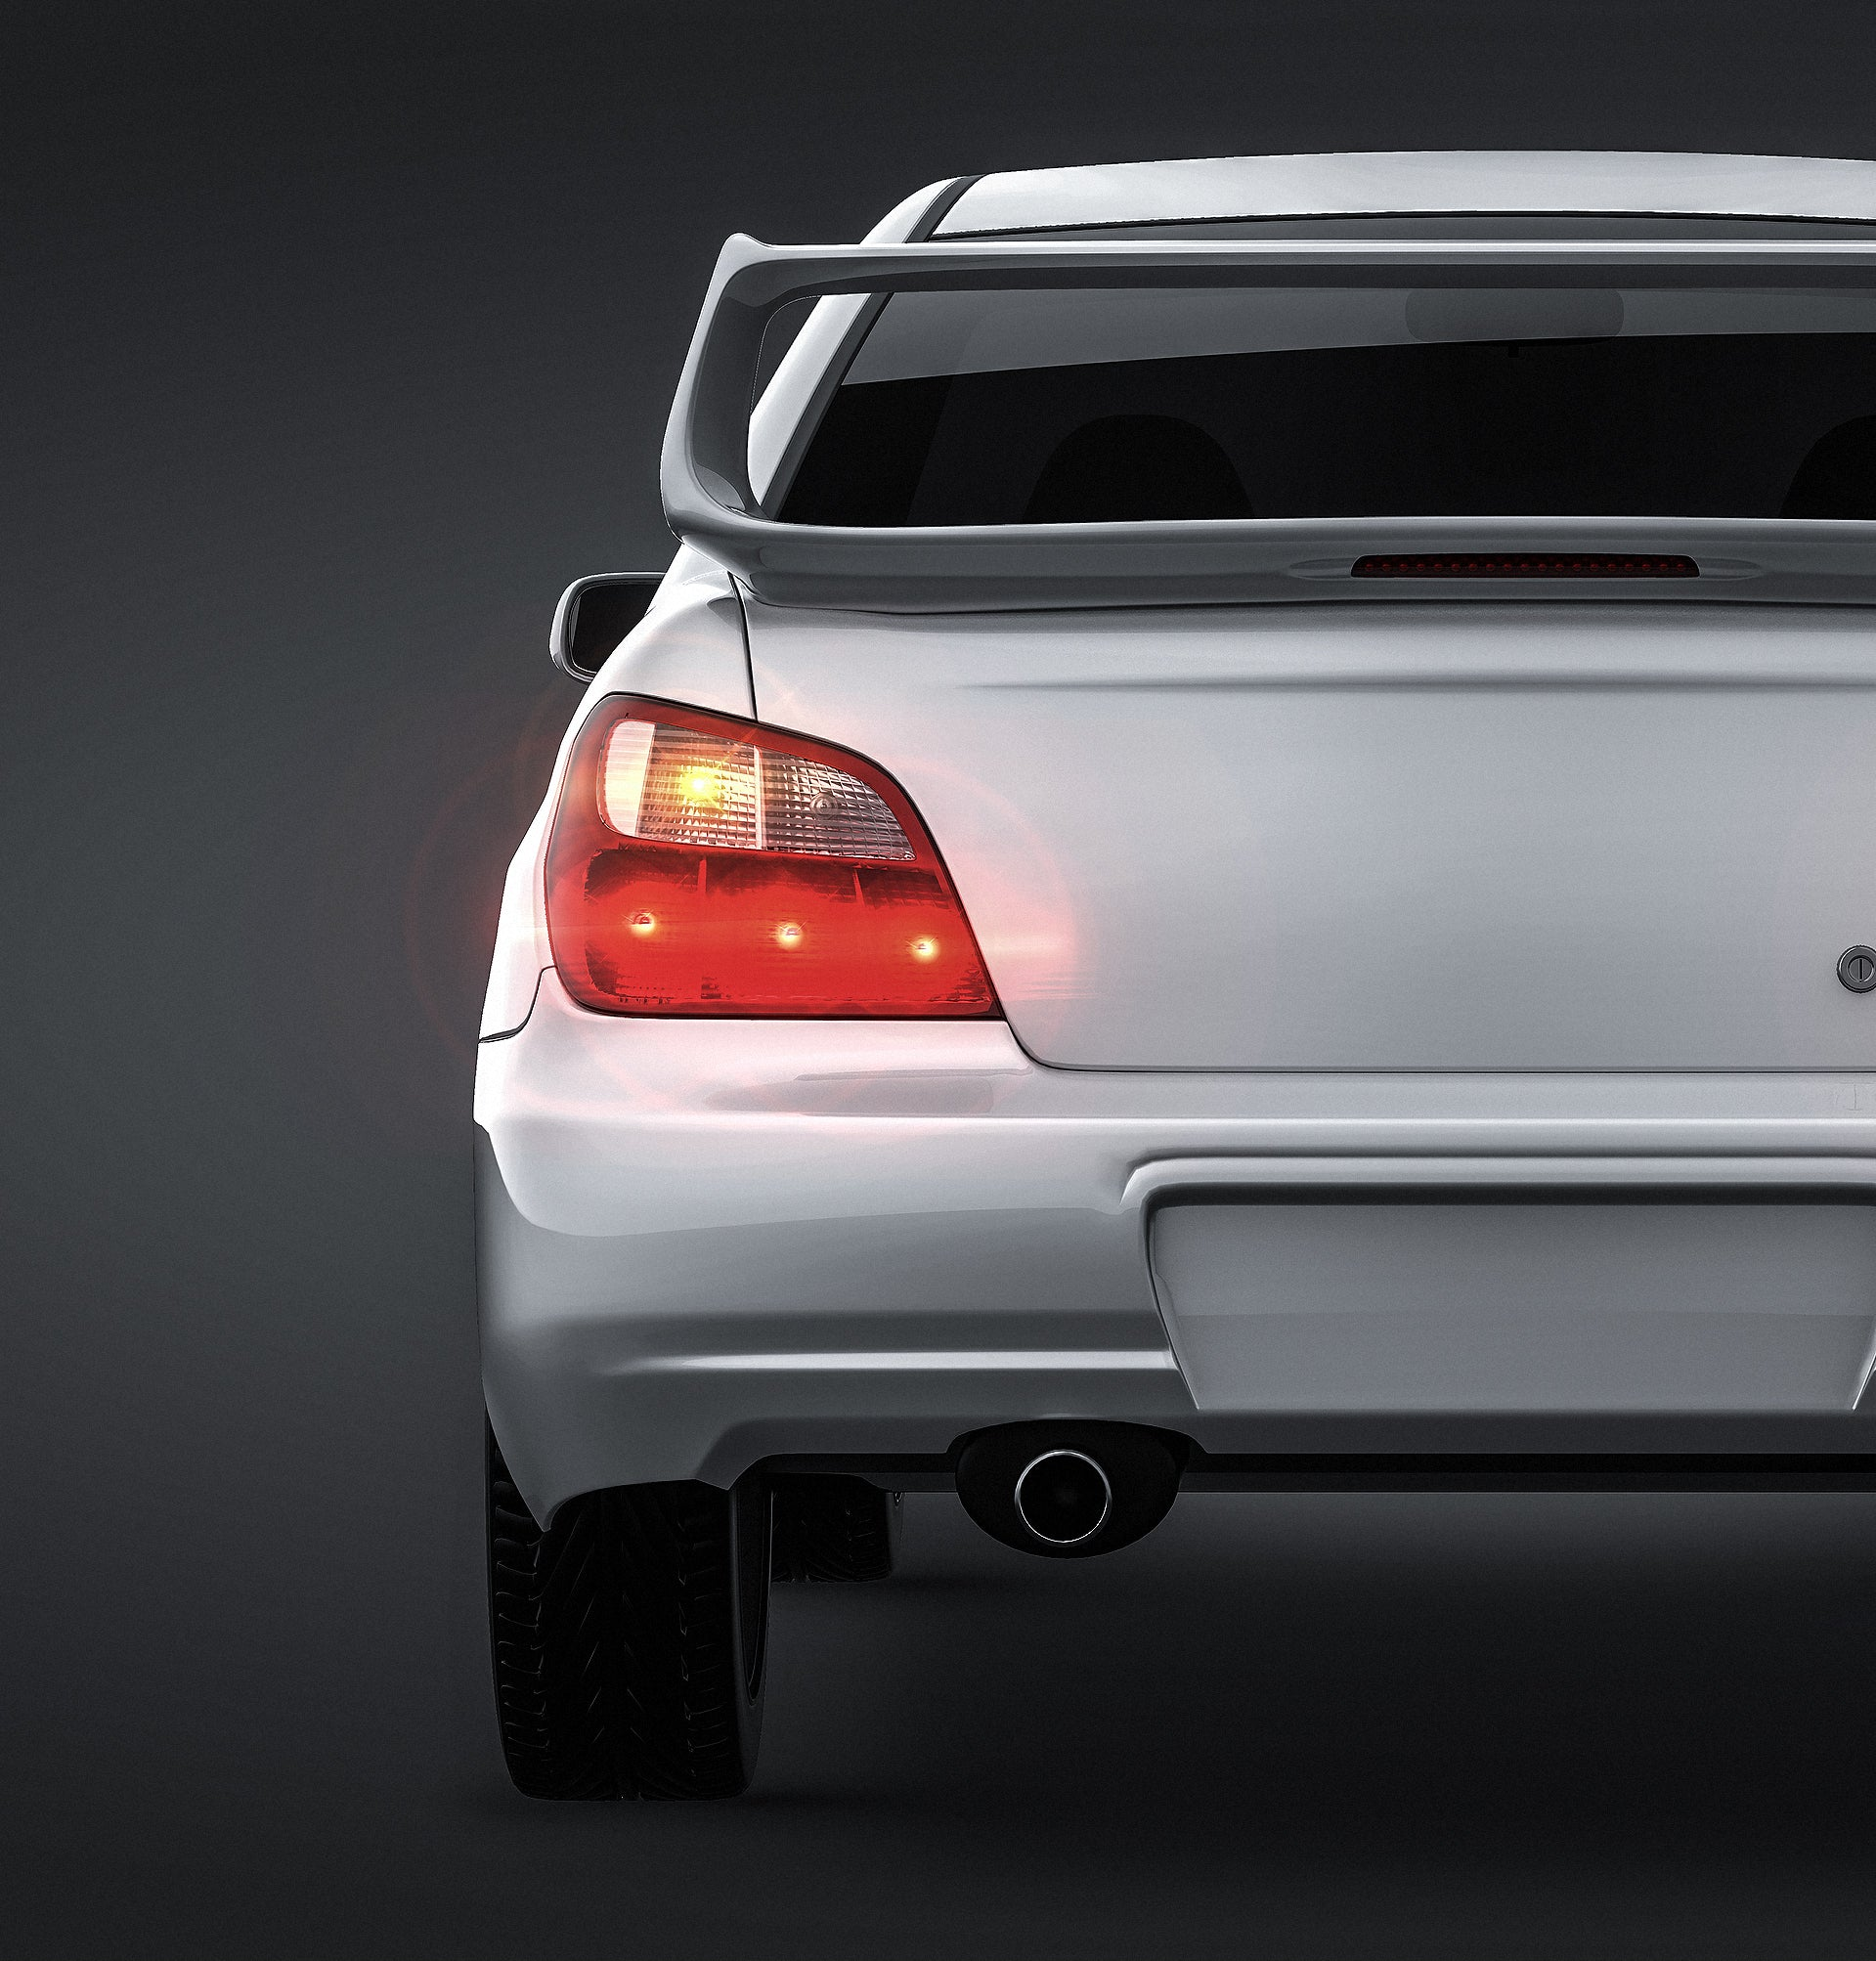 Subaru Impreza STi 2001 all sides Car Mockup Template